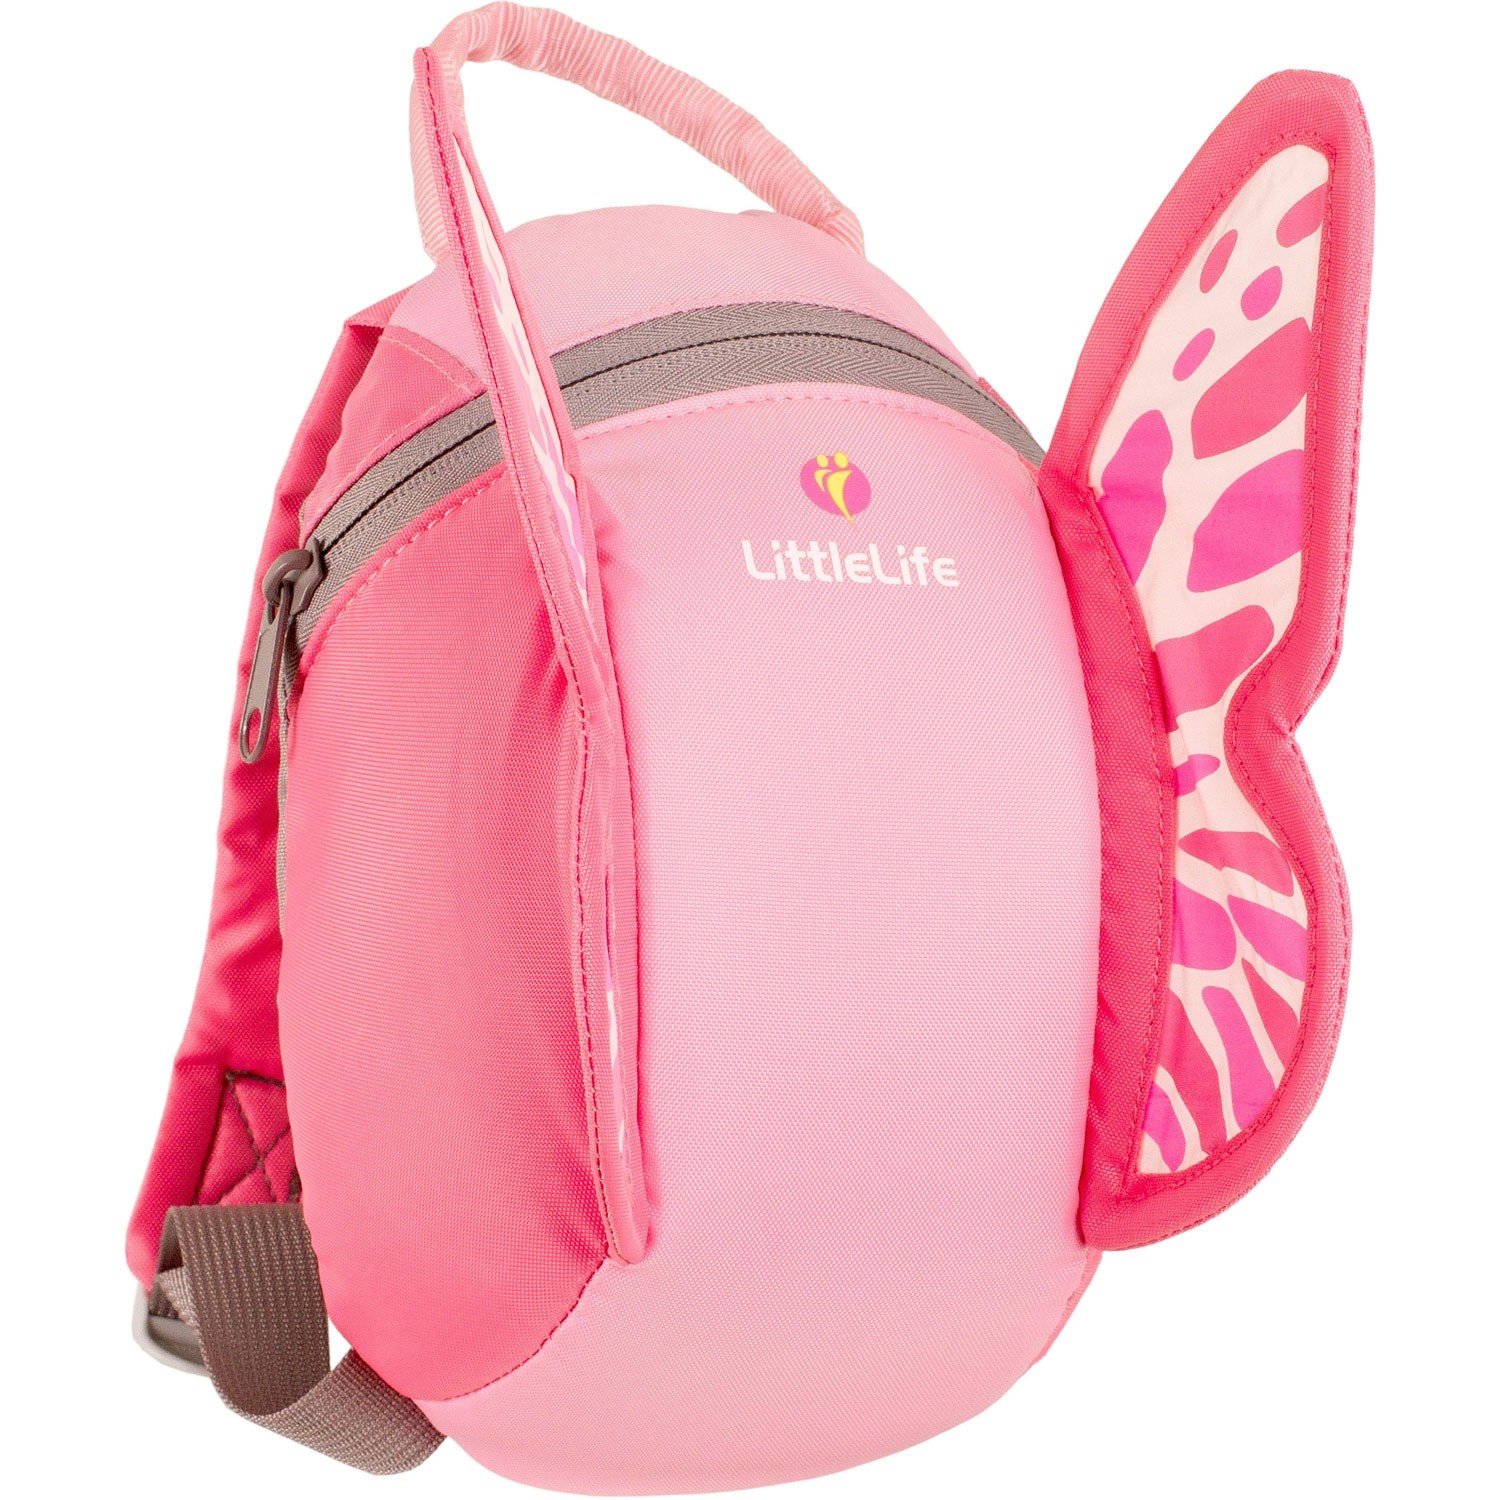 LITTLELIFE - Toddler's Animal Rucksack - Butterfly